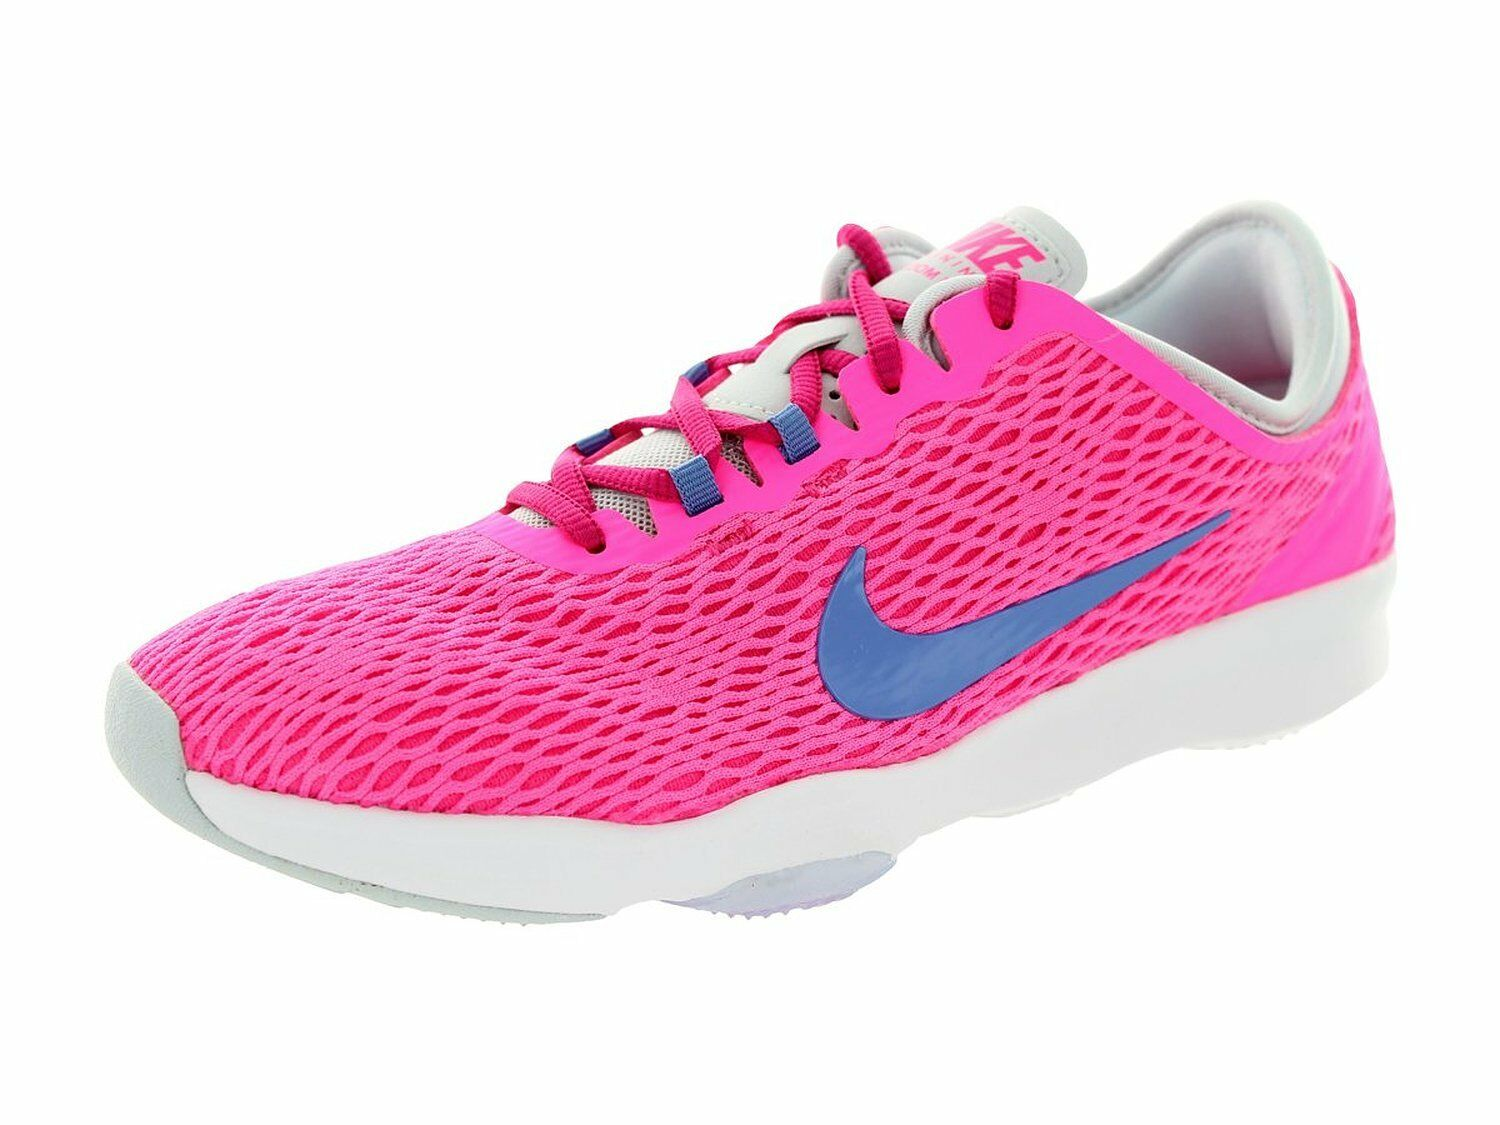 Nike Women's Zoom Fit Cross Trainer 704658 600  RETAIL 90 SIZE 11 NEW